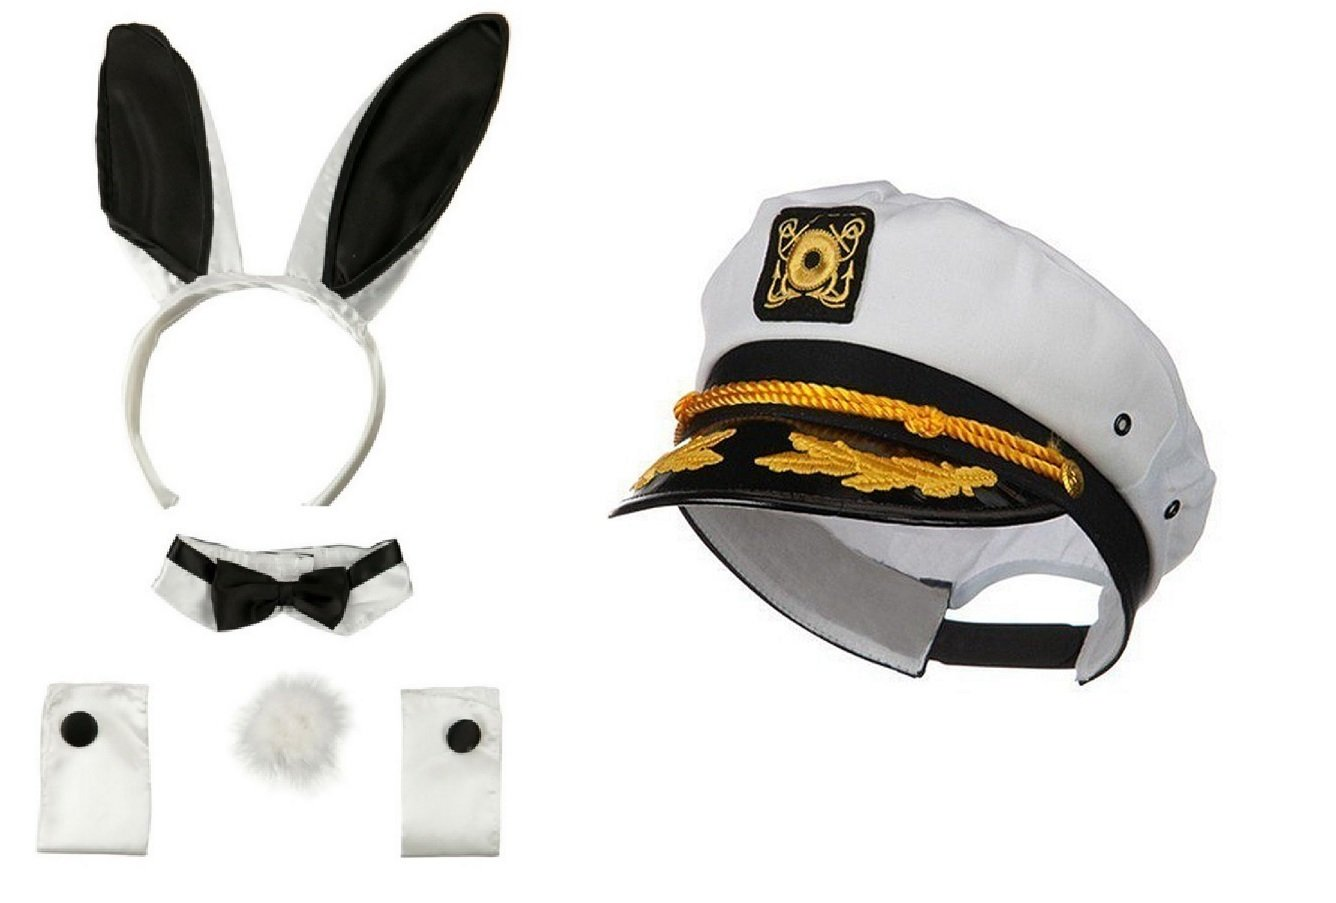 Nicky Bigs Novelties Sailor Ship Yacht Captain Hat Playboy Bunny Hugh Costume Kit Fisherman Bunnies